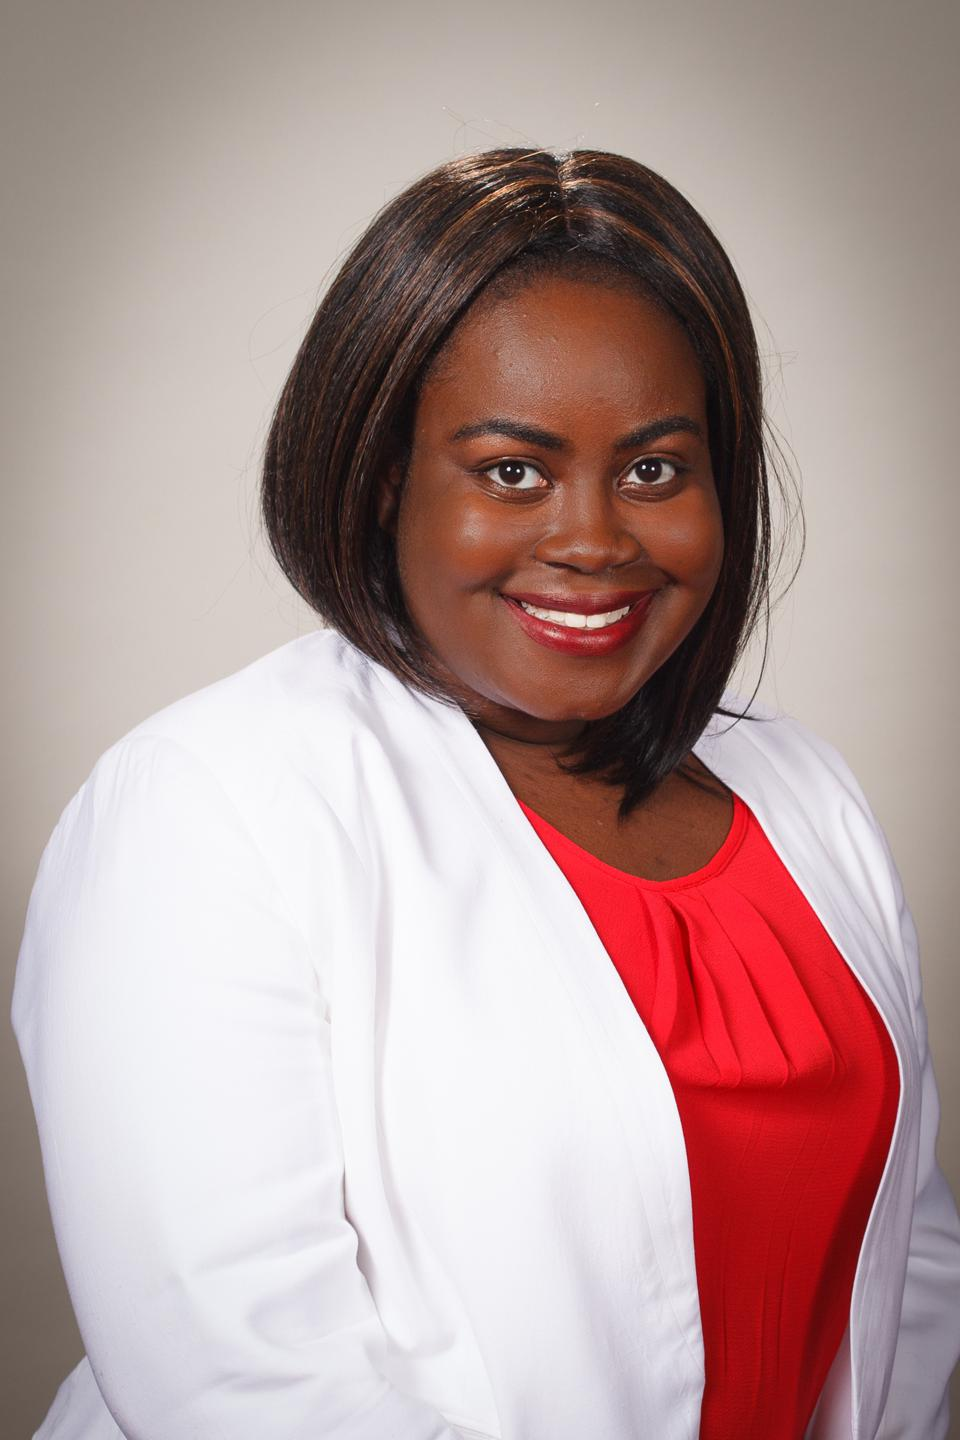 Jasmin Crentsil smiling in a white blazer and red shirt.